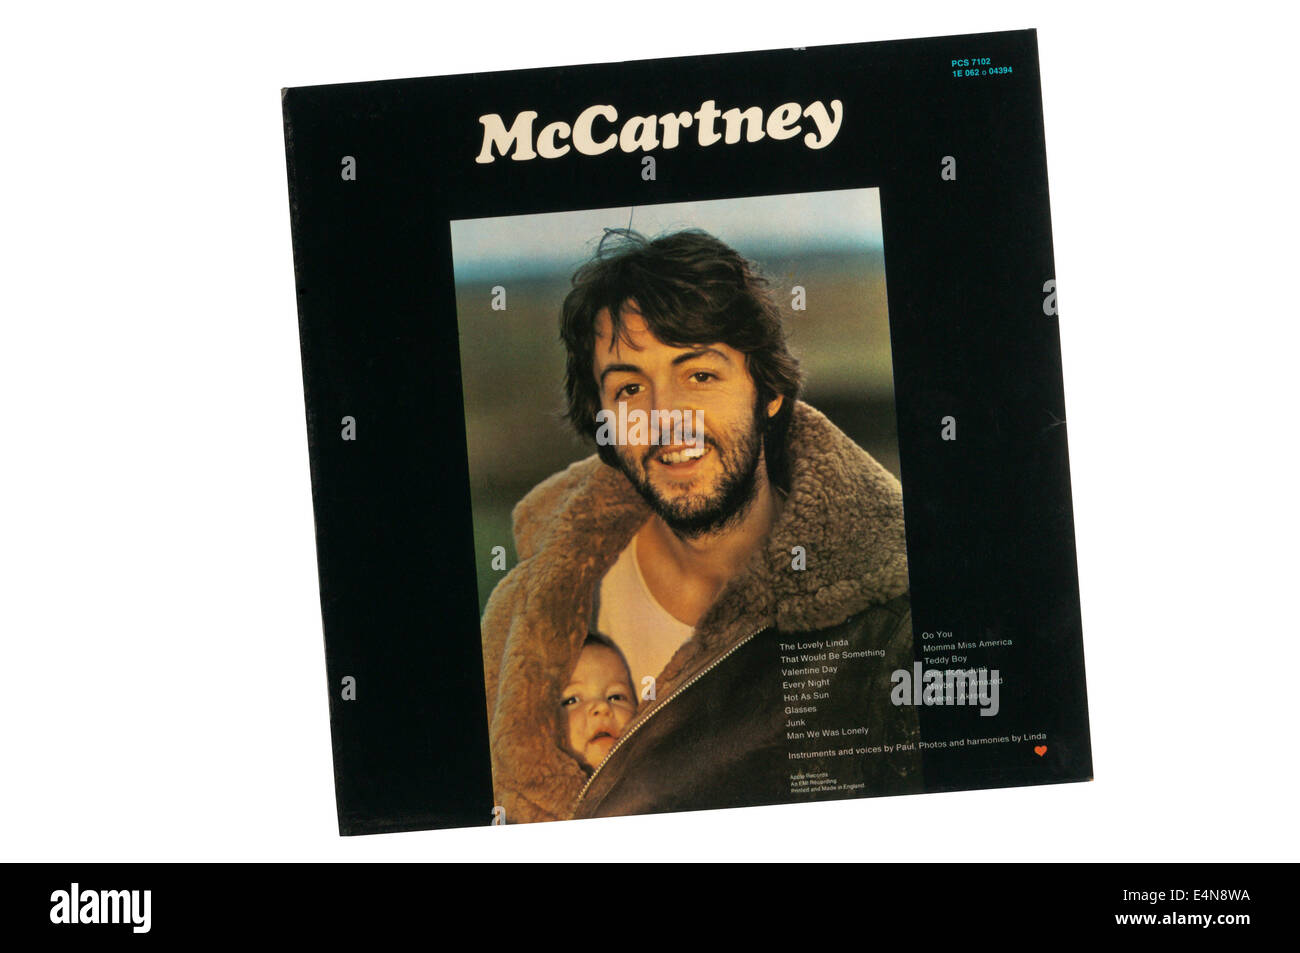 McCartney was first solo album by Paul McCartney. It was issued on Apple Records in April 1970. Photograph shows - Stock Image